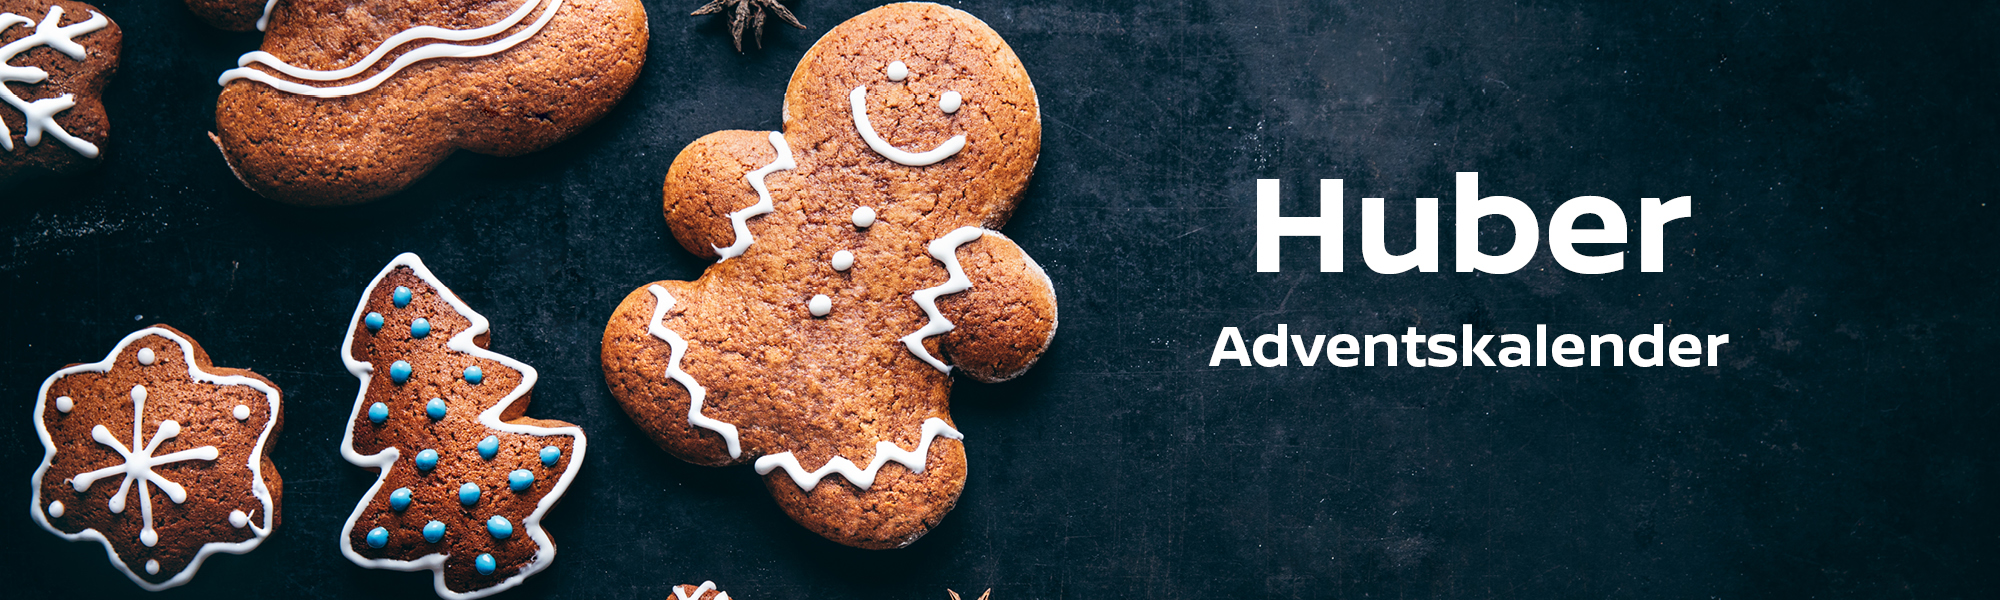 Huber-Adventskalender